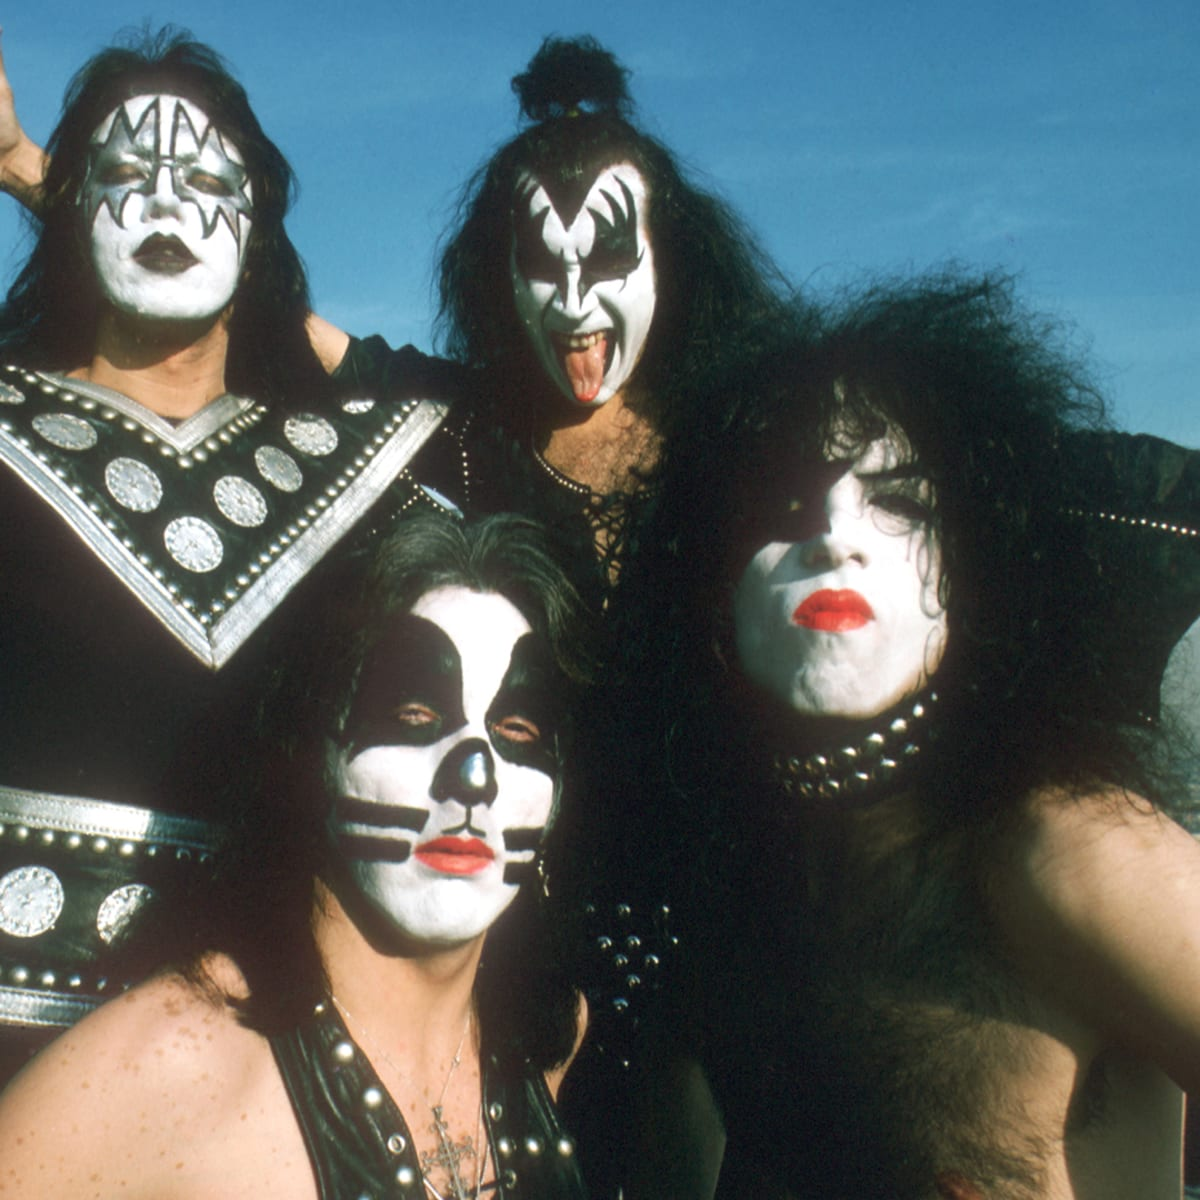 When Kiss Wiped Away Their Iconic Face Paint In 1983 Fans Hated The New Look Biography